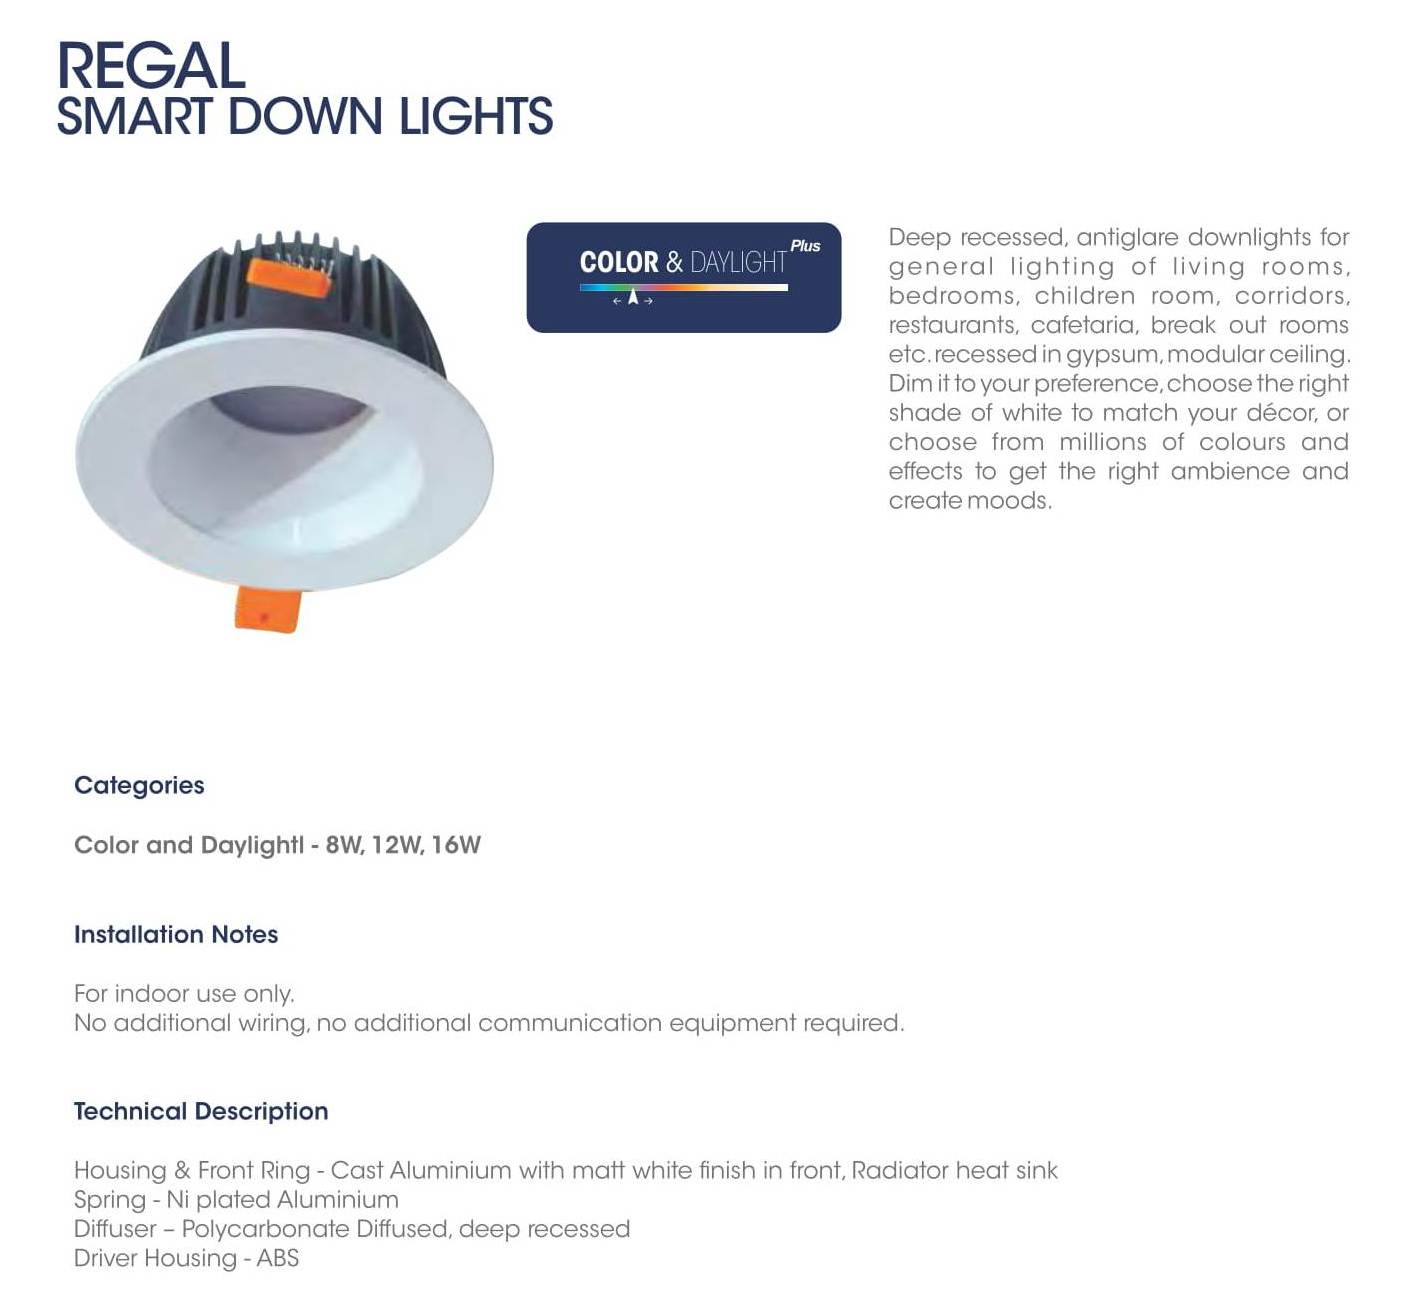 Regal Smart Down Lights